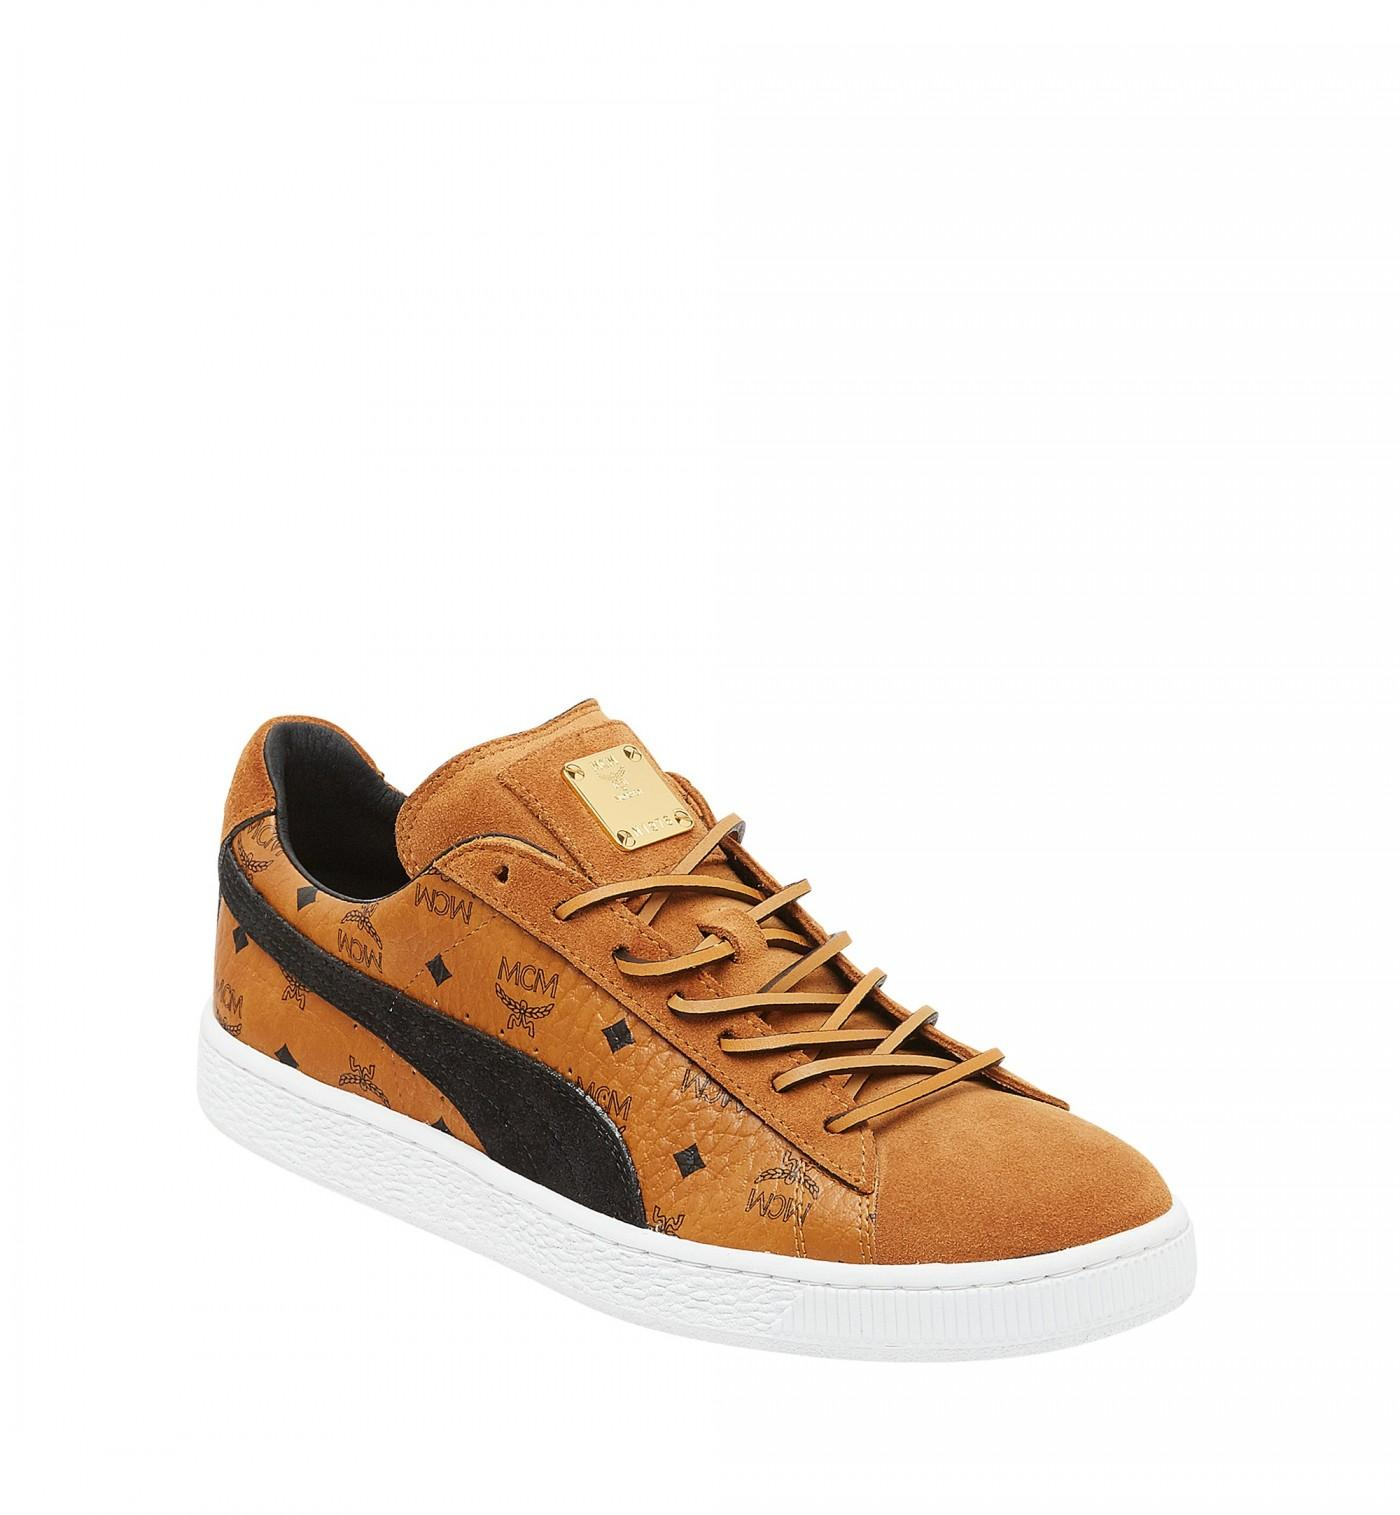 outlet store 3796f ab89a Of Course the Puma x MCM Collab Sold Out In a Matter of Hours